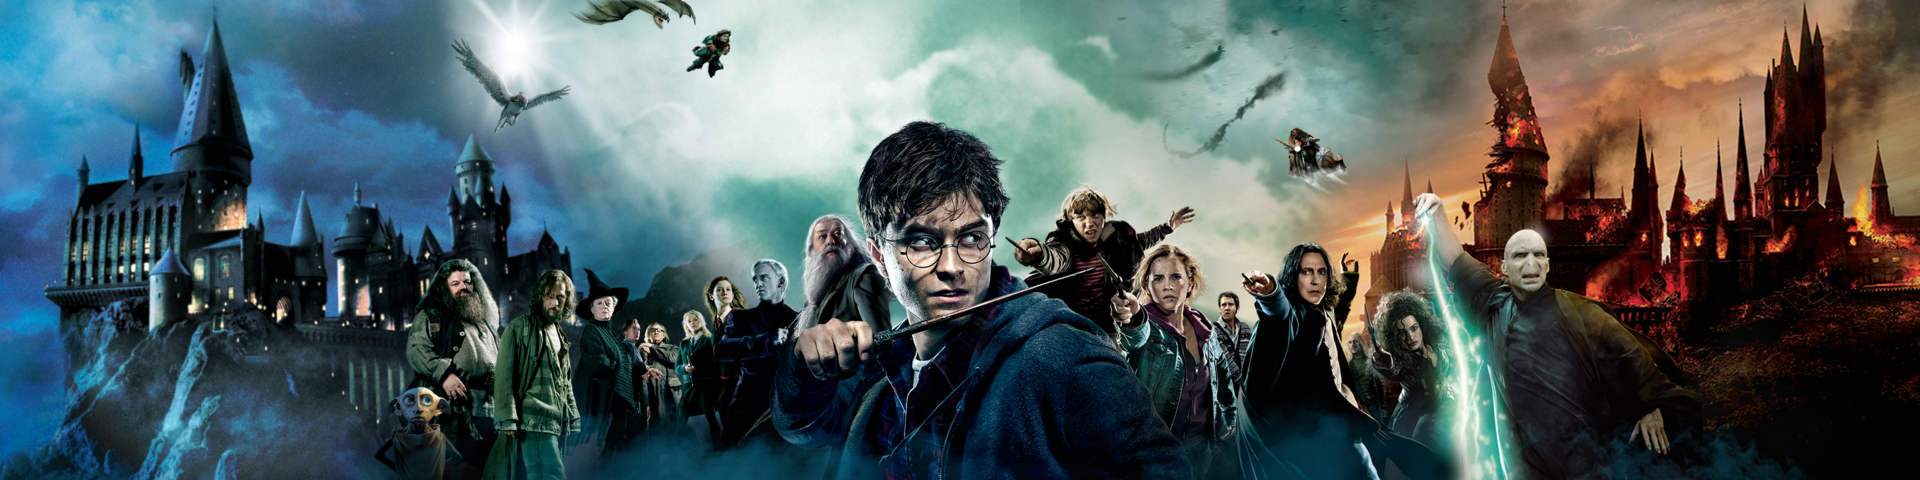 WarnerBros com | Harry Potter 8-Film Collection | Movies